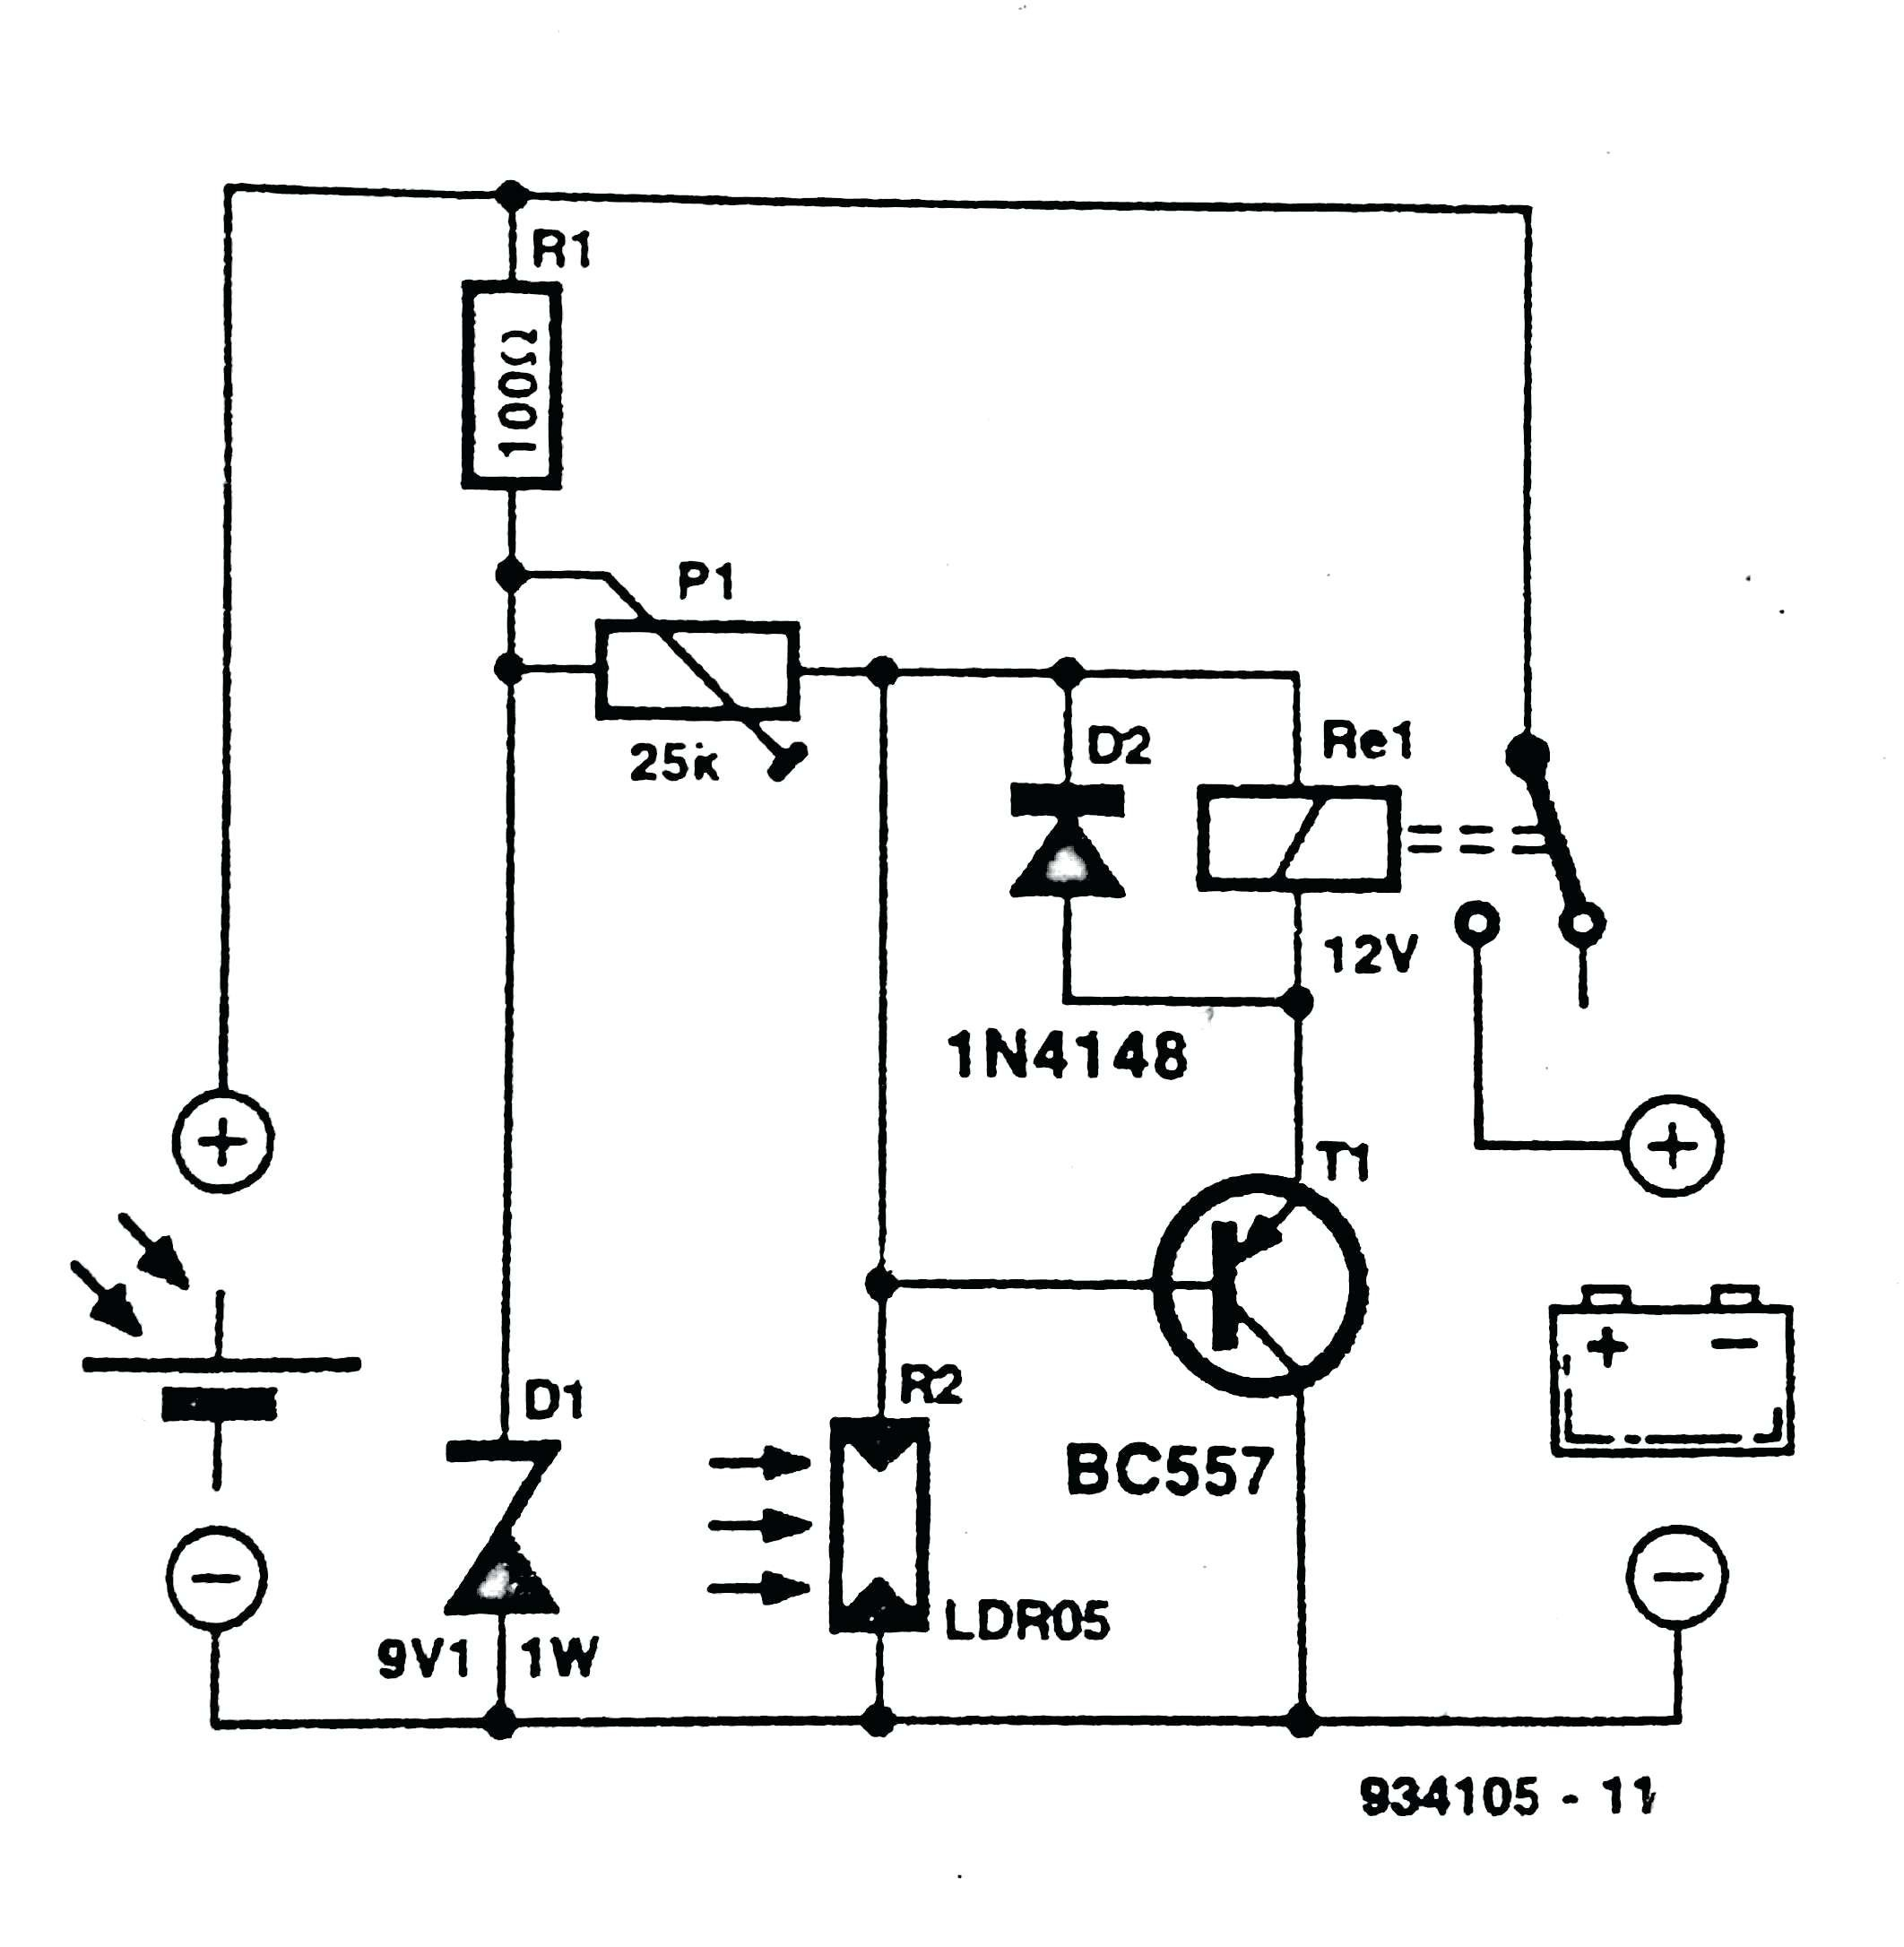 Circuit Diagram Rules